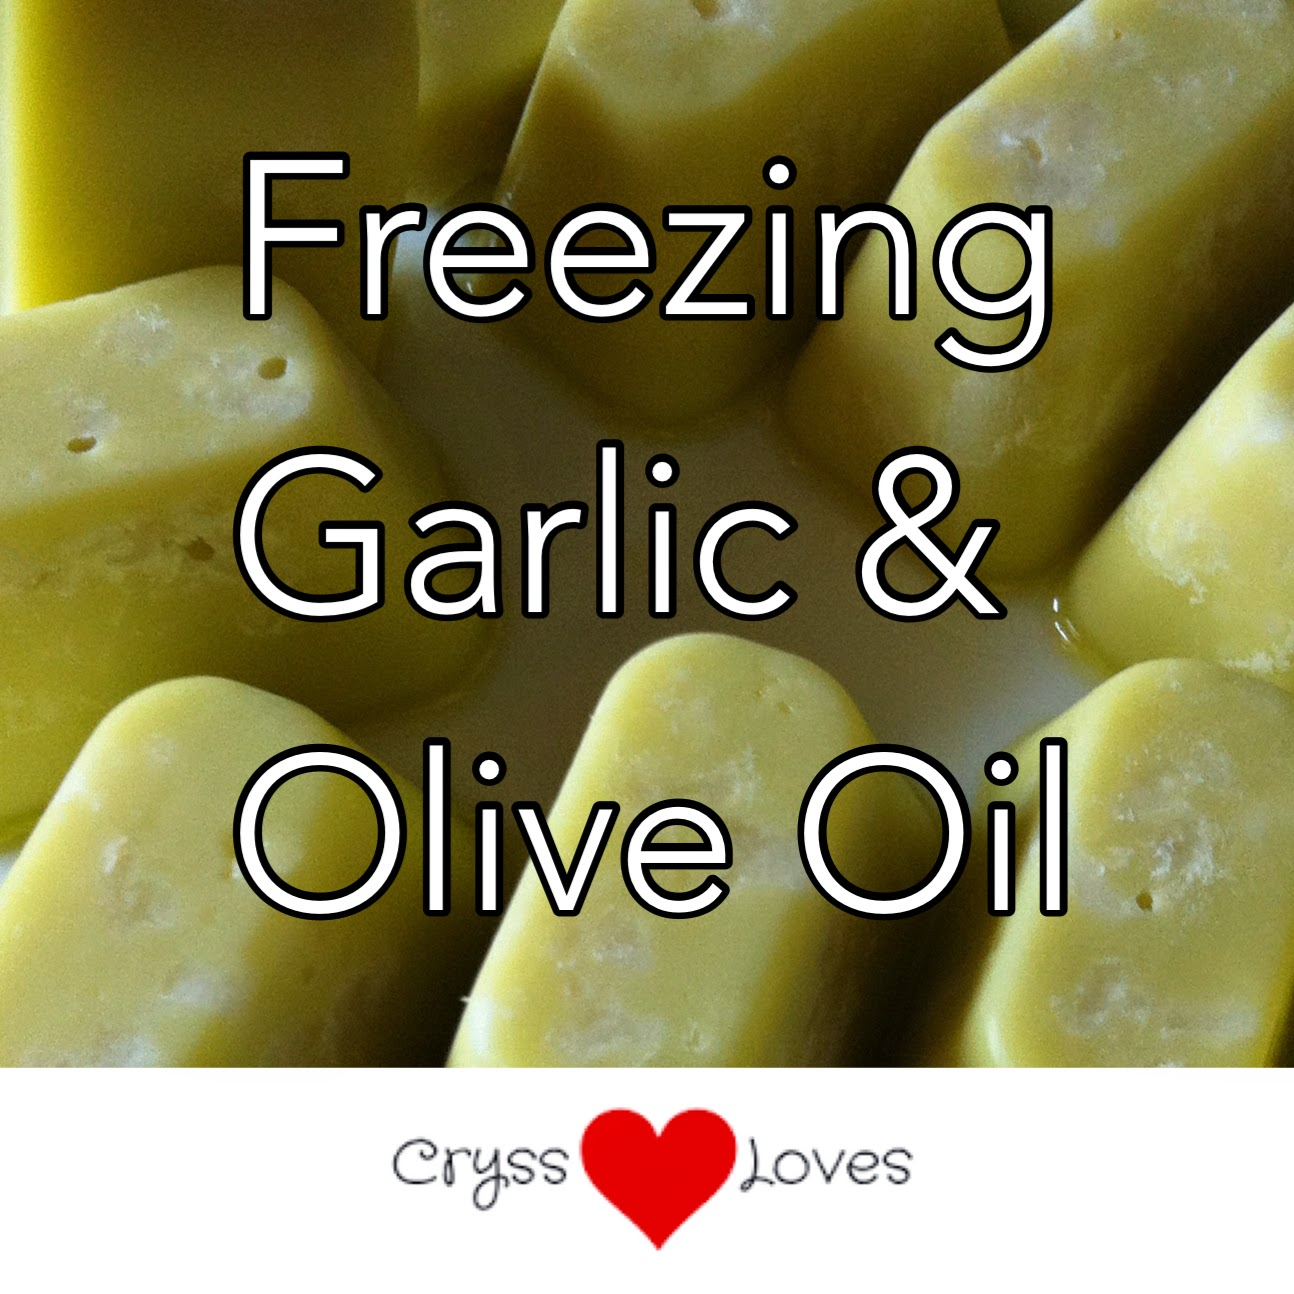 Freezing Garlic & Olive Oil